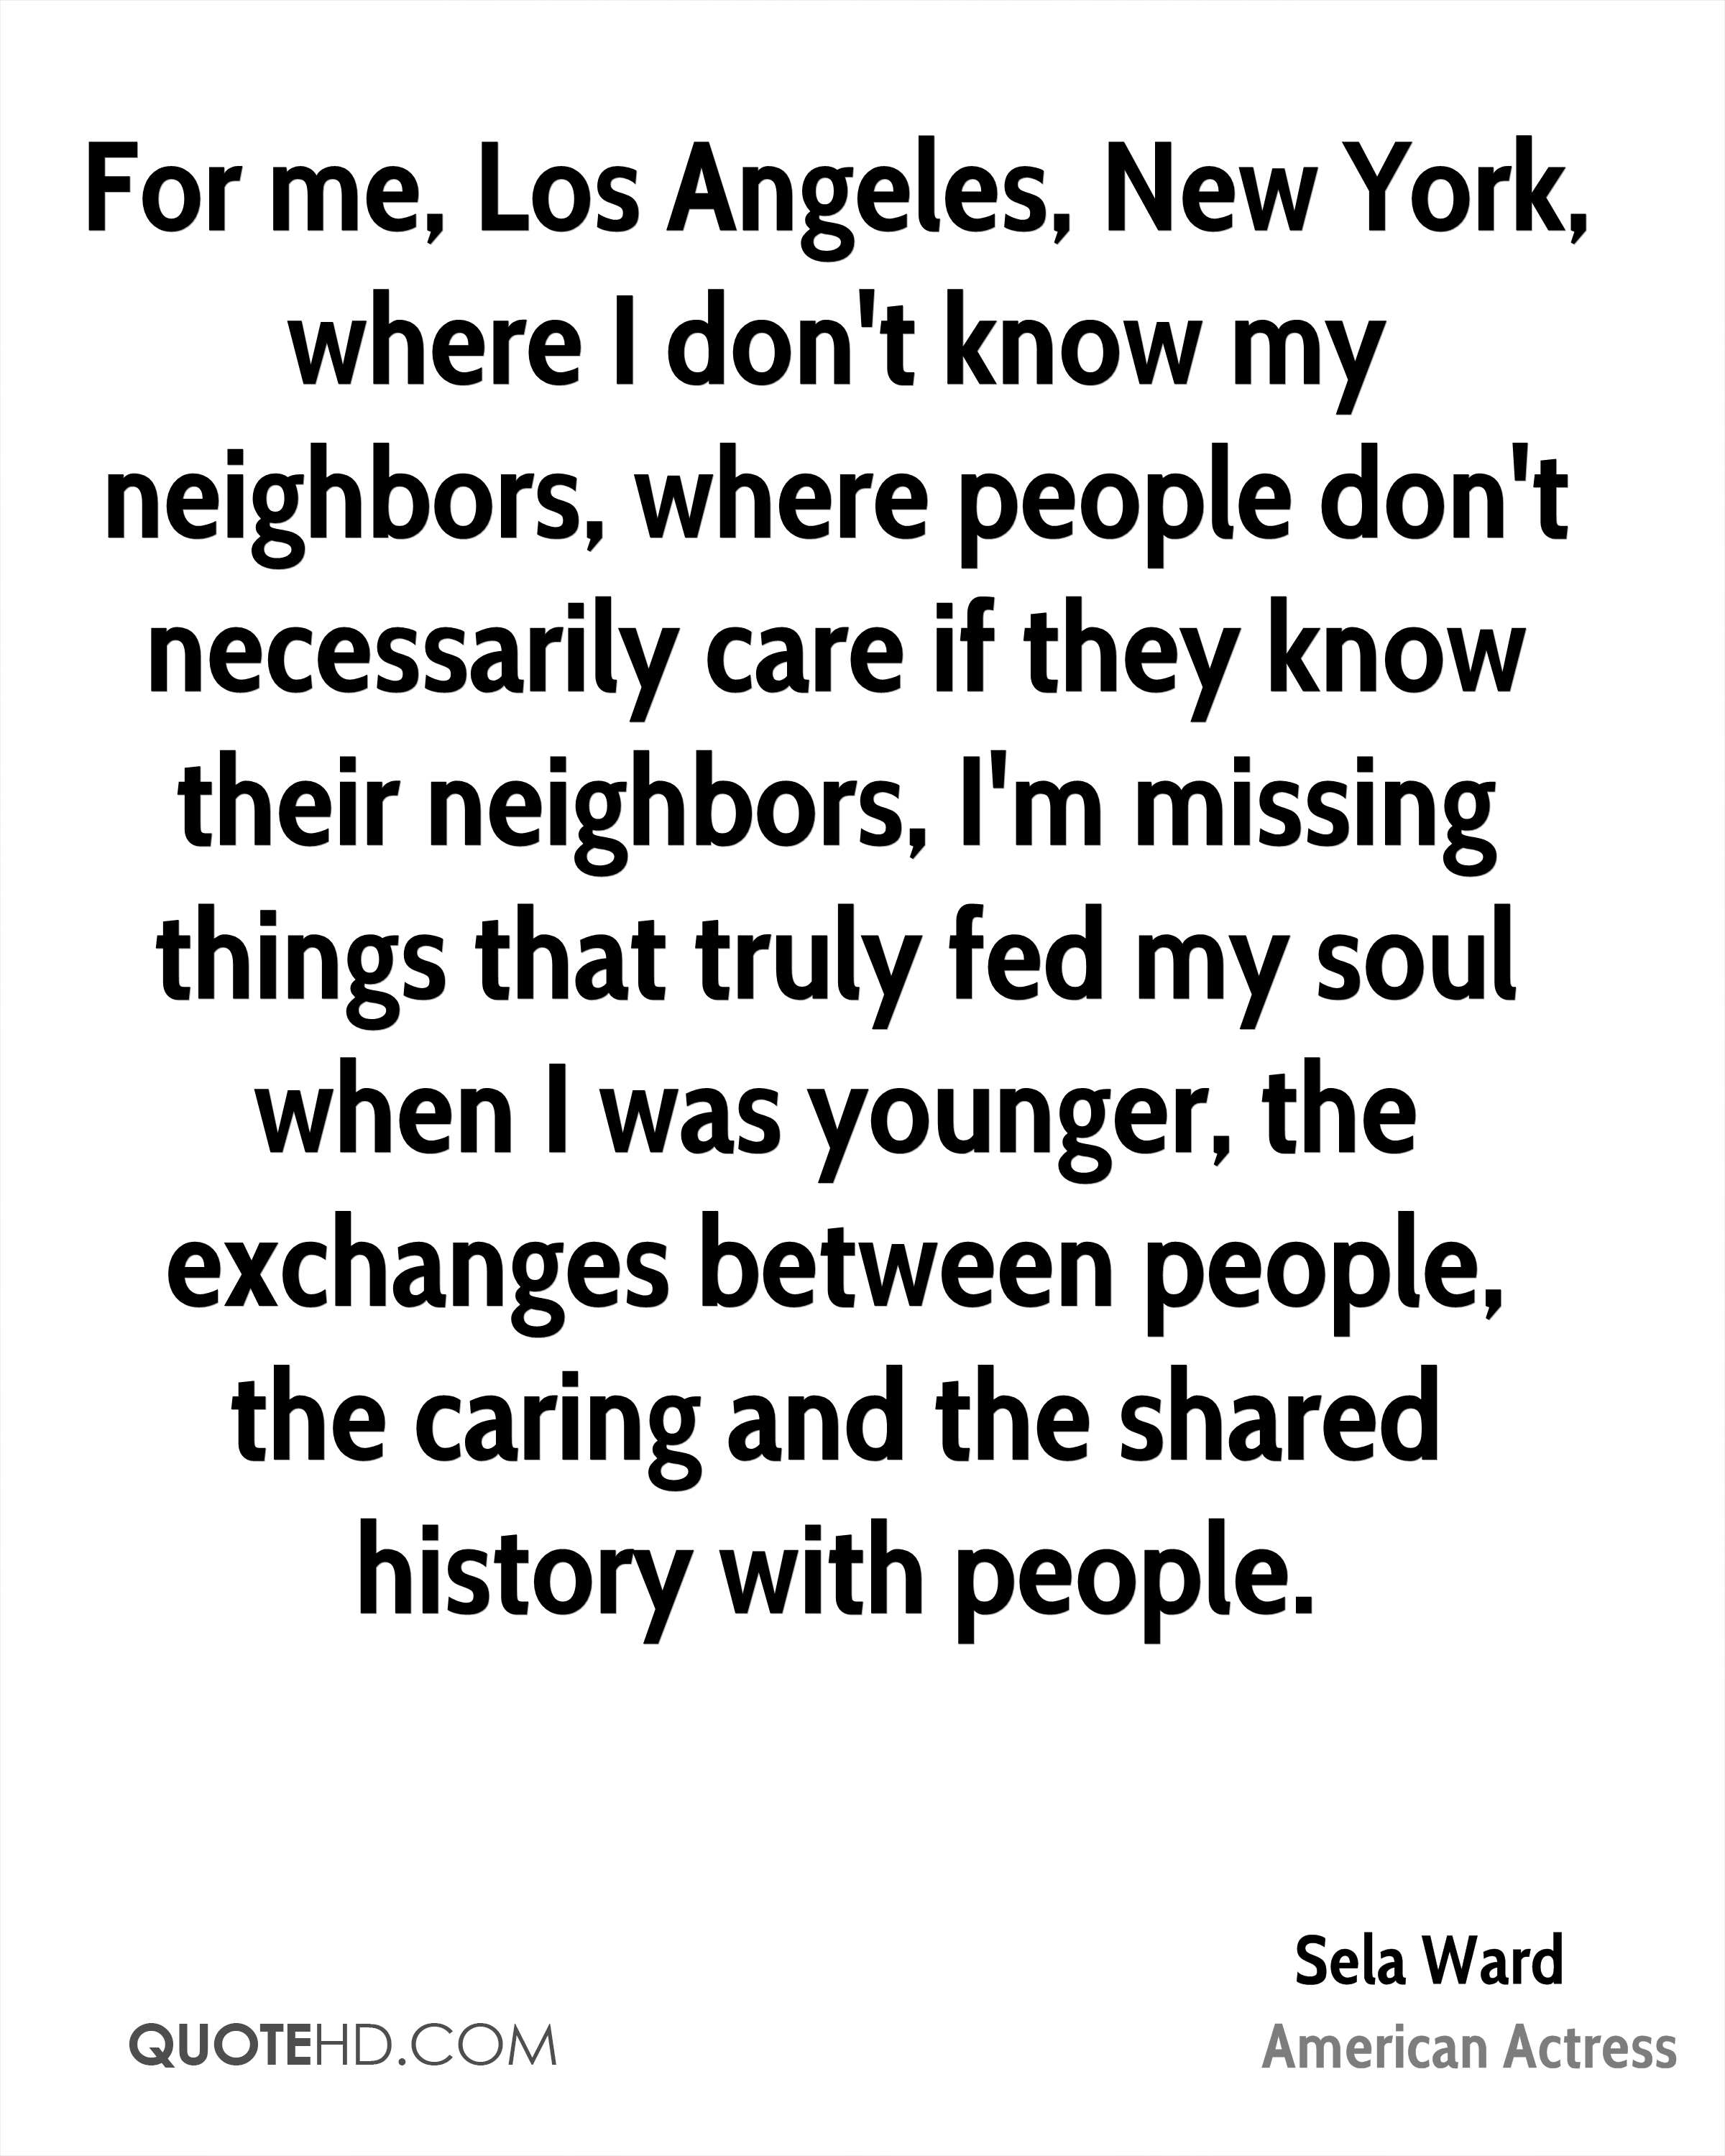 For me, Los Angeles, New York, where I don't know my neighbors, where people don't necessarily care if they know their neighbors, I'm missing things that truly fed my soul when I was younger, the exchanges between people, the caring and the shared history with people.